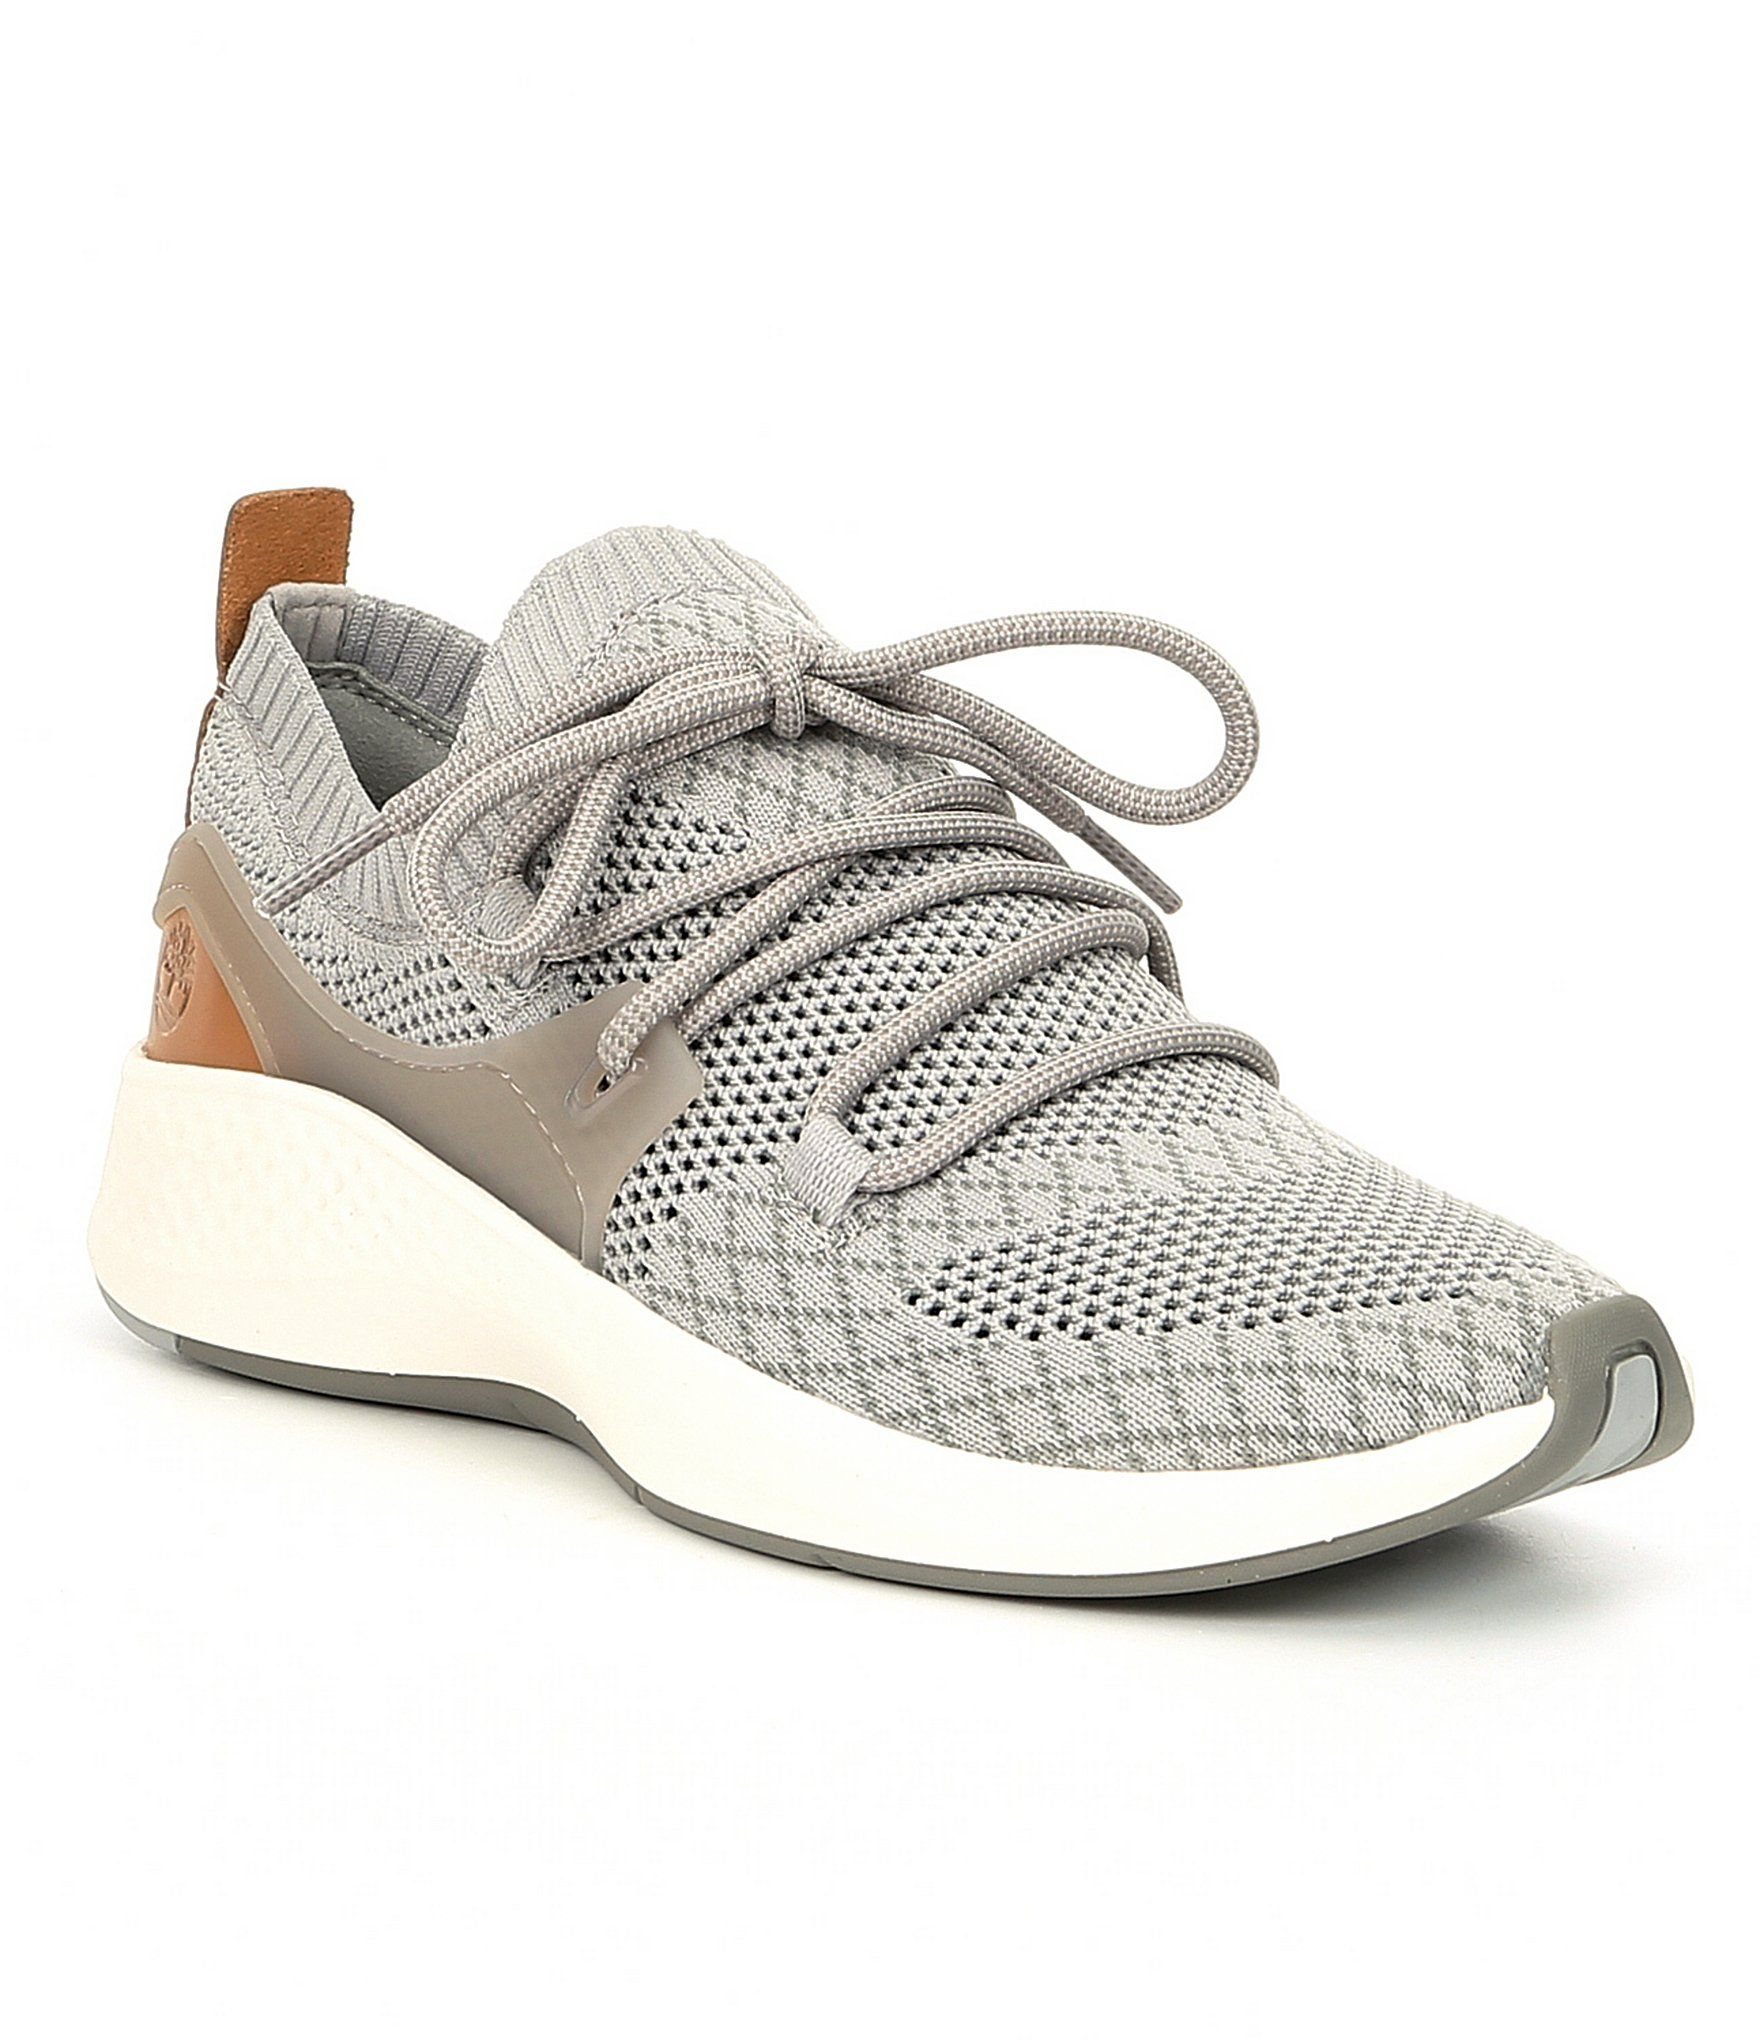 Timberland Fly Roam Go Knit Sneakers